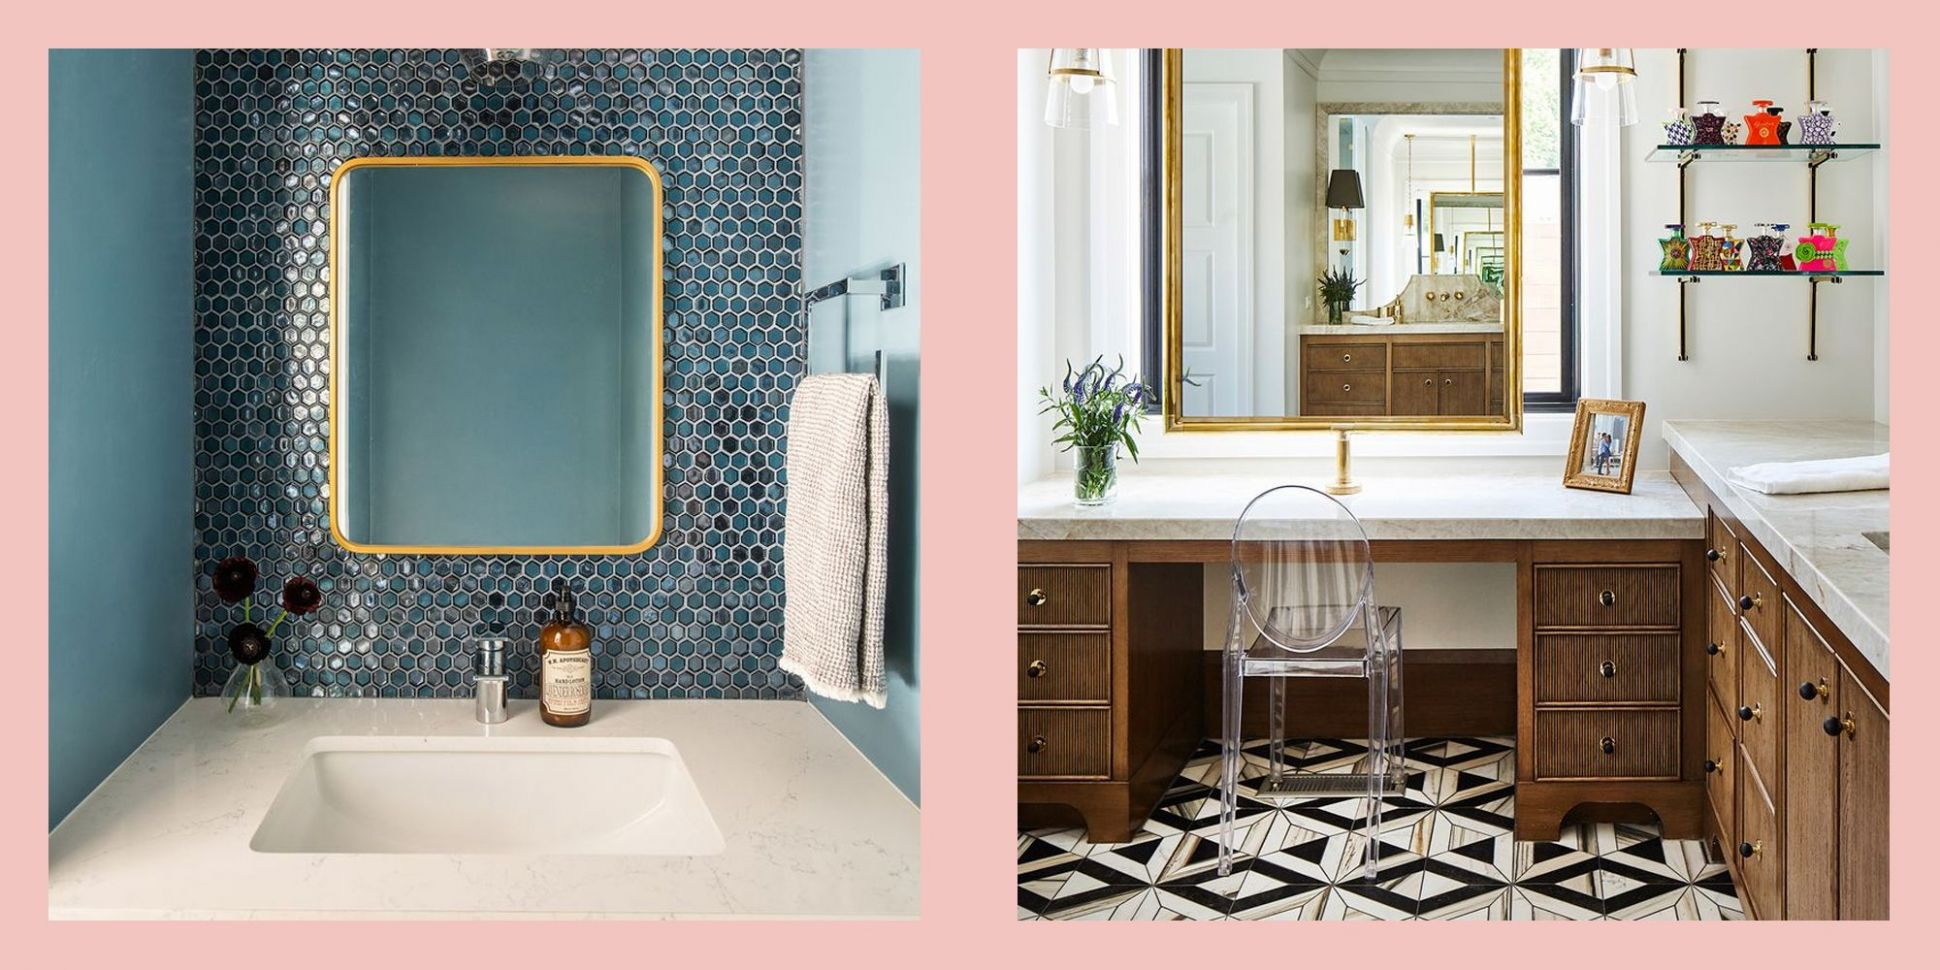 Top Bathroom Trends of 10 - What Bathroom Styles Are In - bathroom ideas for 2020